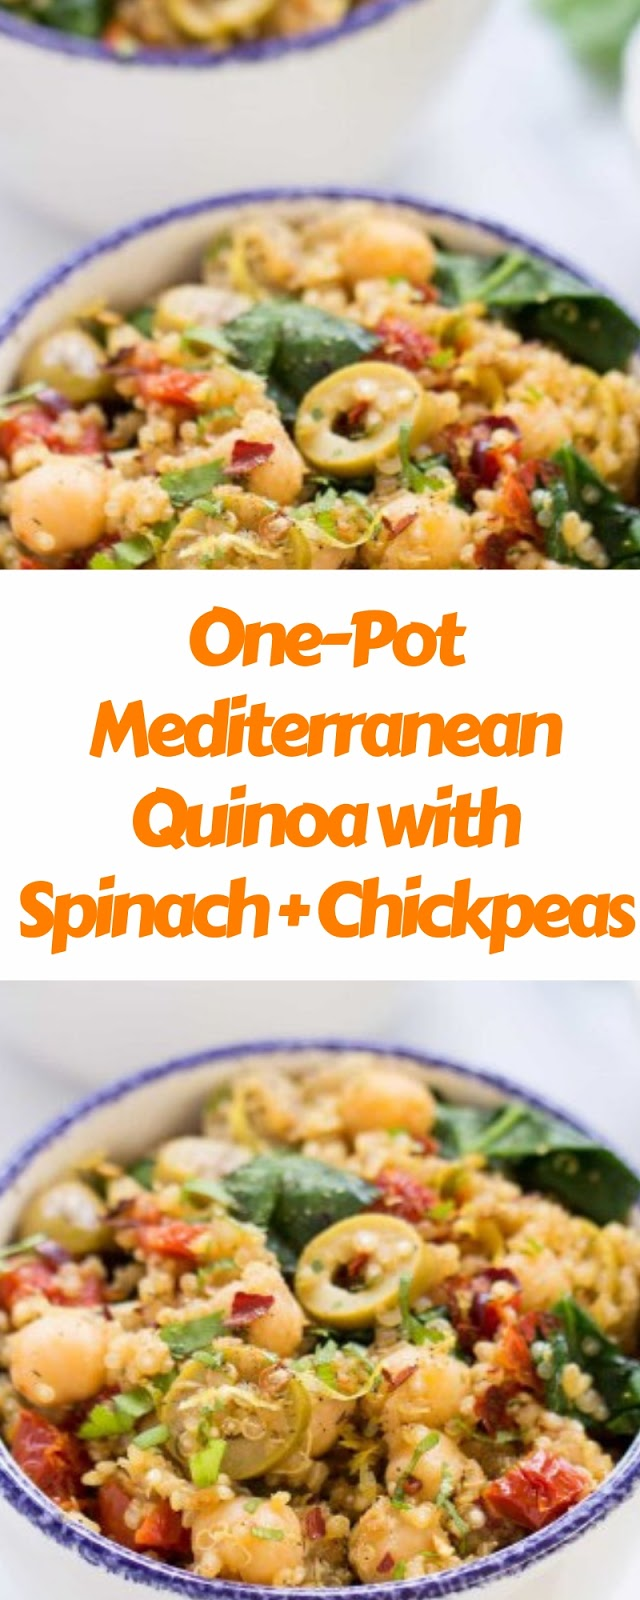 One-Pot Mediterranean Quinoa with Spinach and Chickpeas